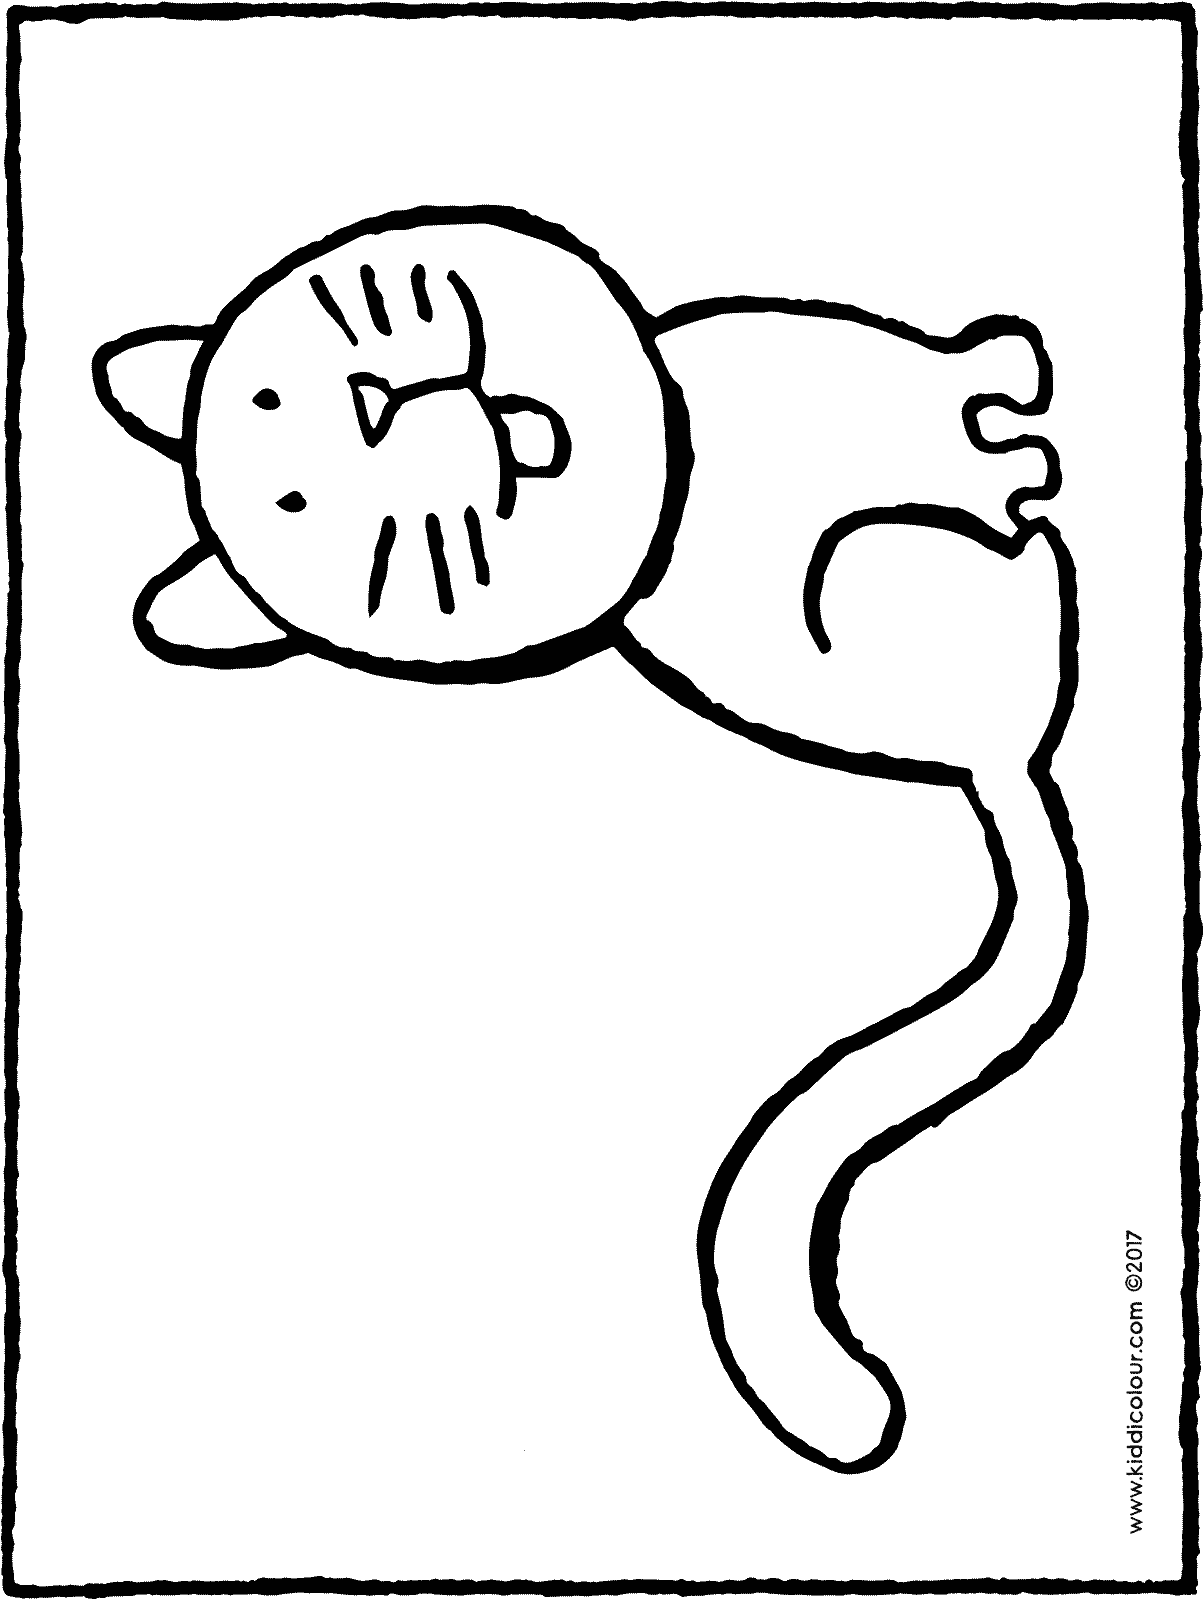 cat colouring page drawing picture 01H